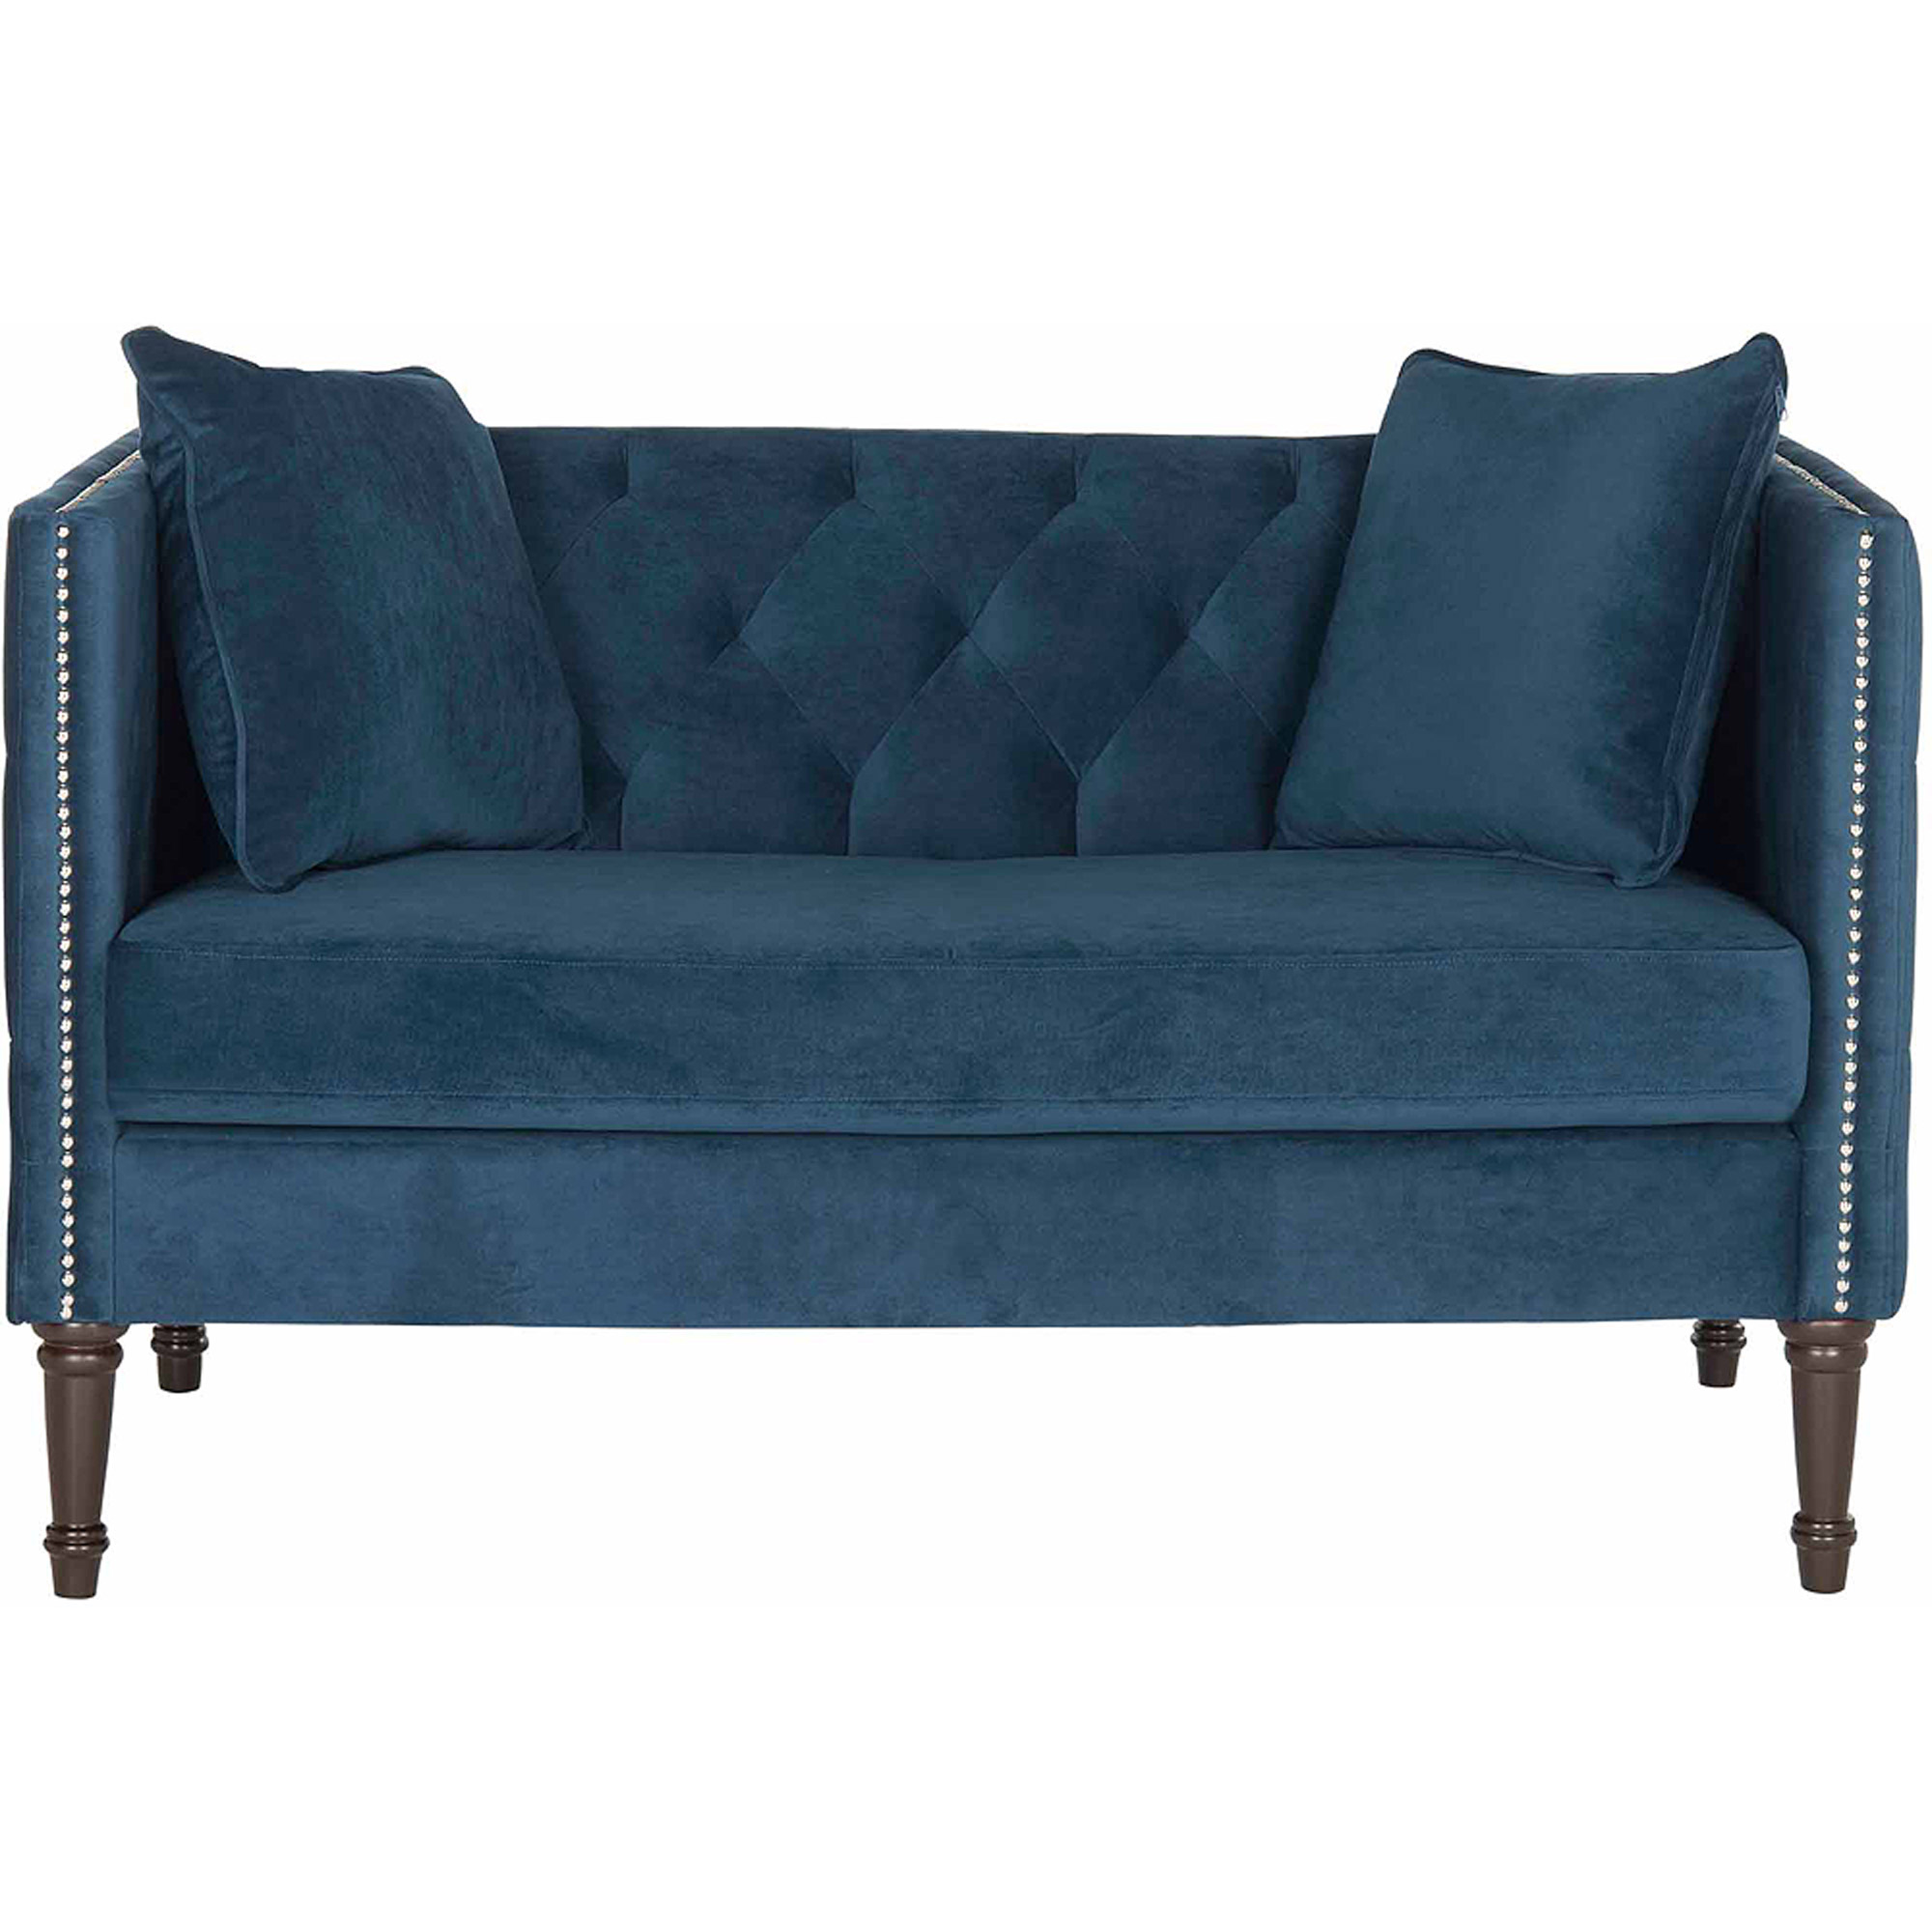 "Safavieh 53"" Sarah Tufted Settee with Pillows, Multiple Colors"